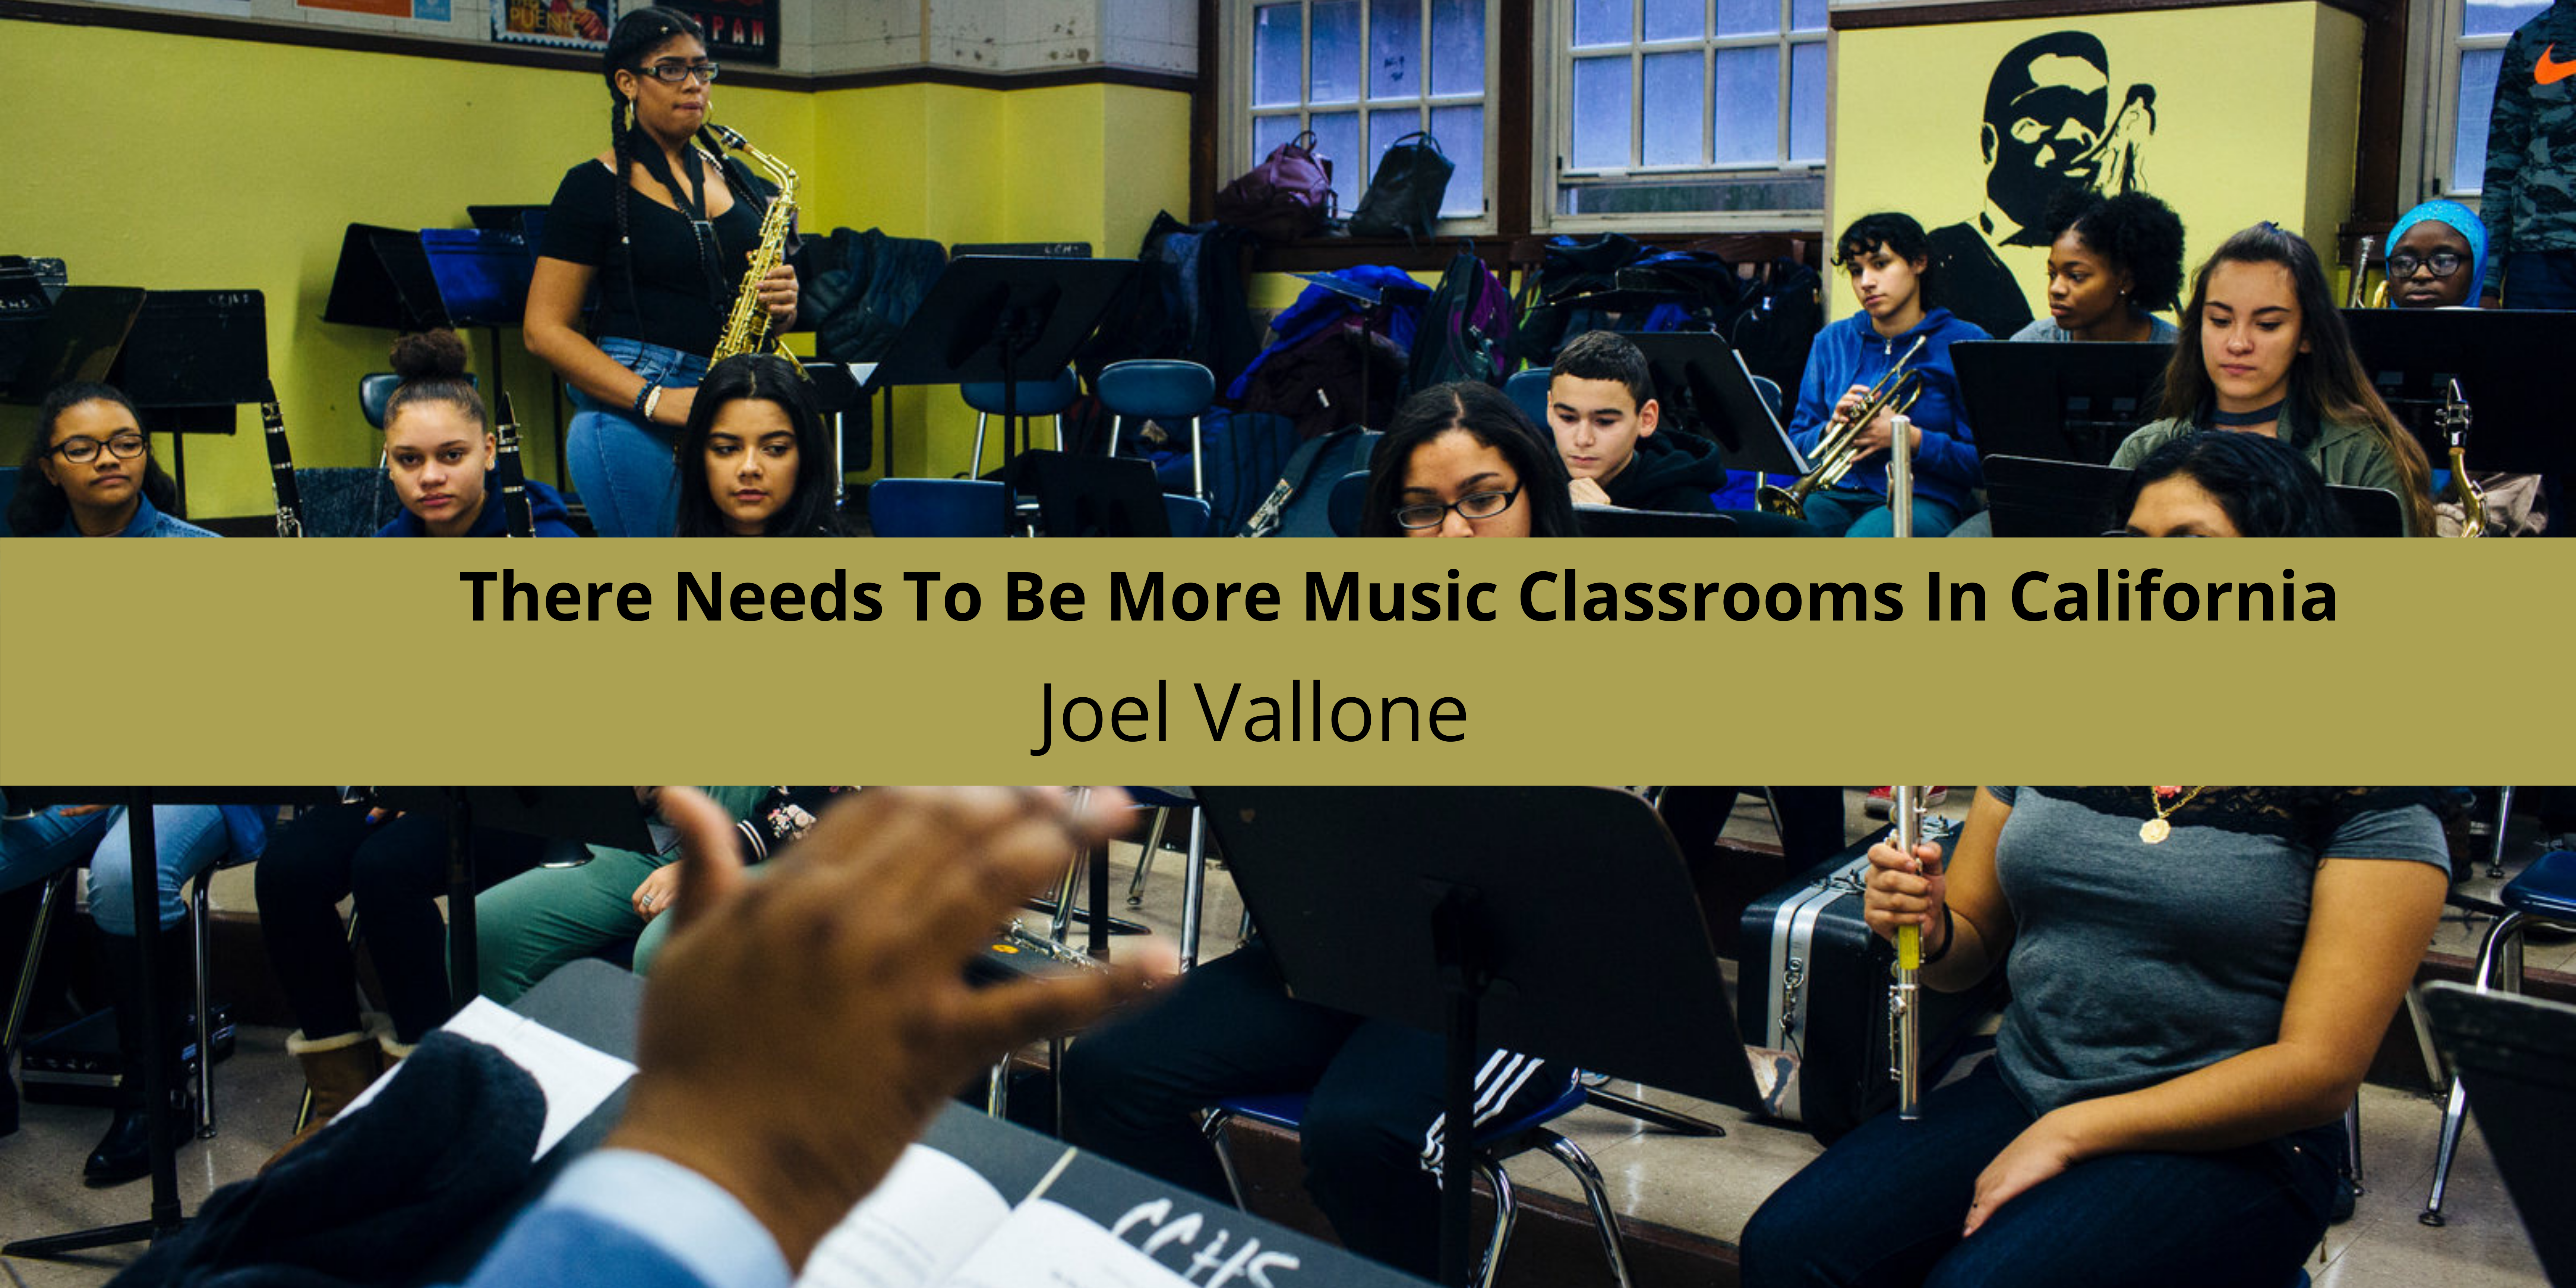 There Needs To Be More Music Classrooms In California